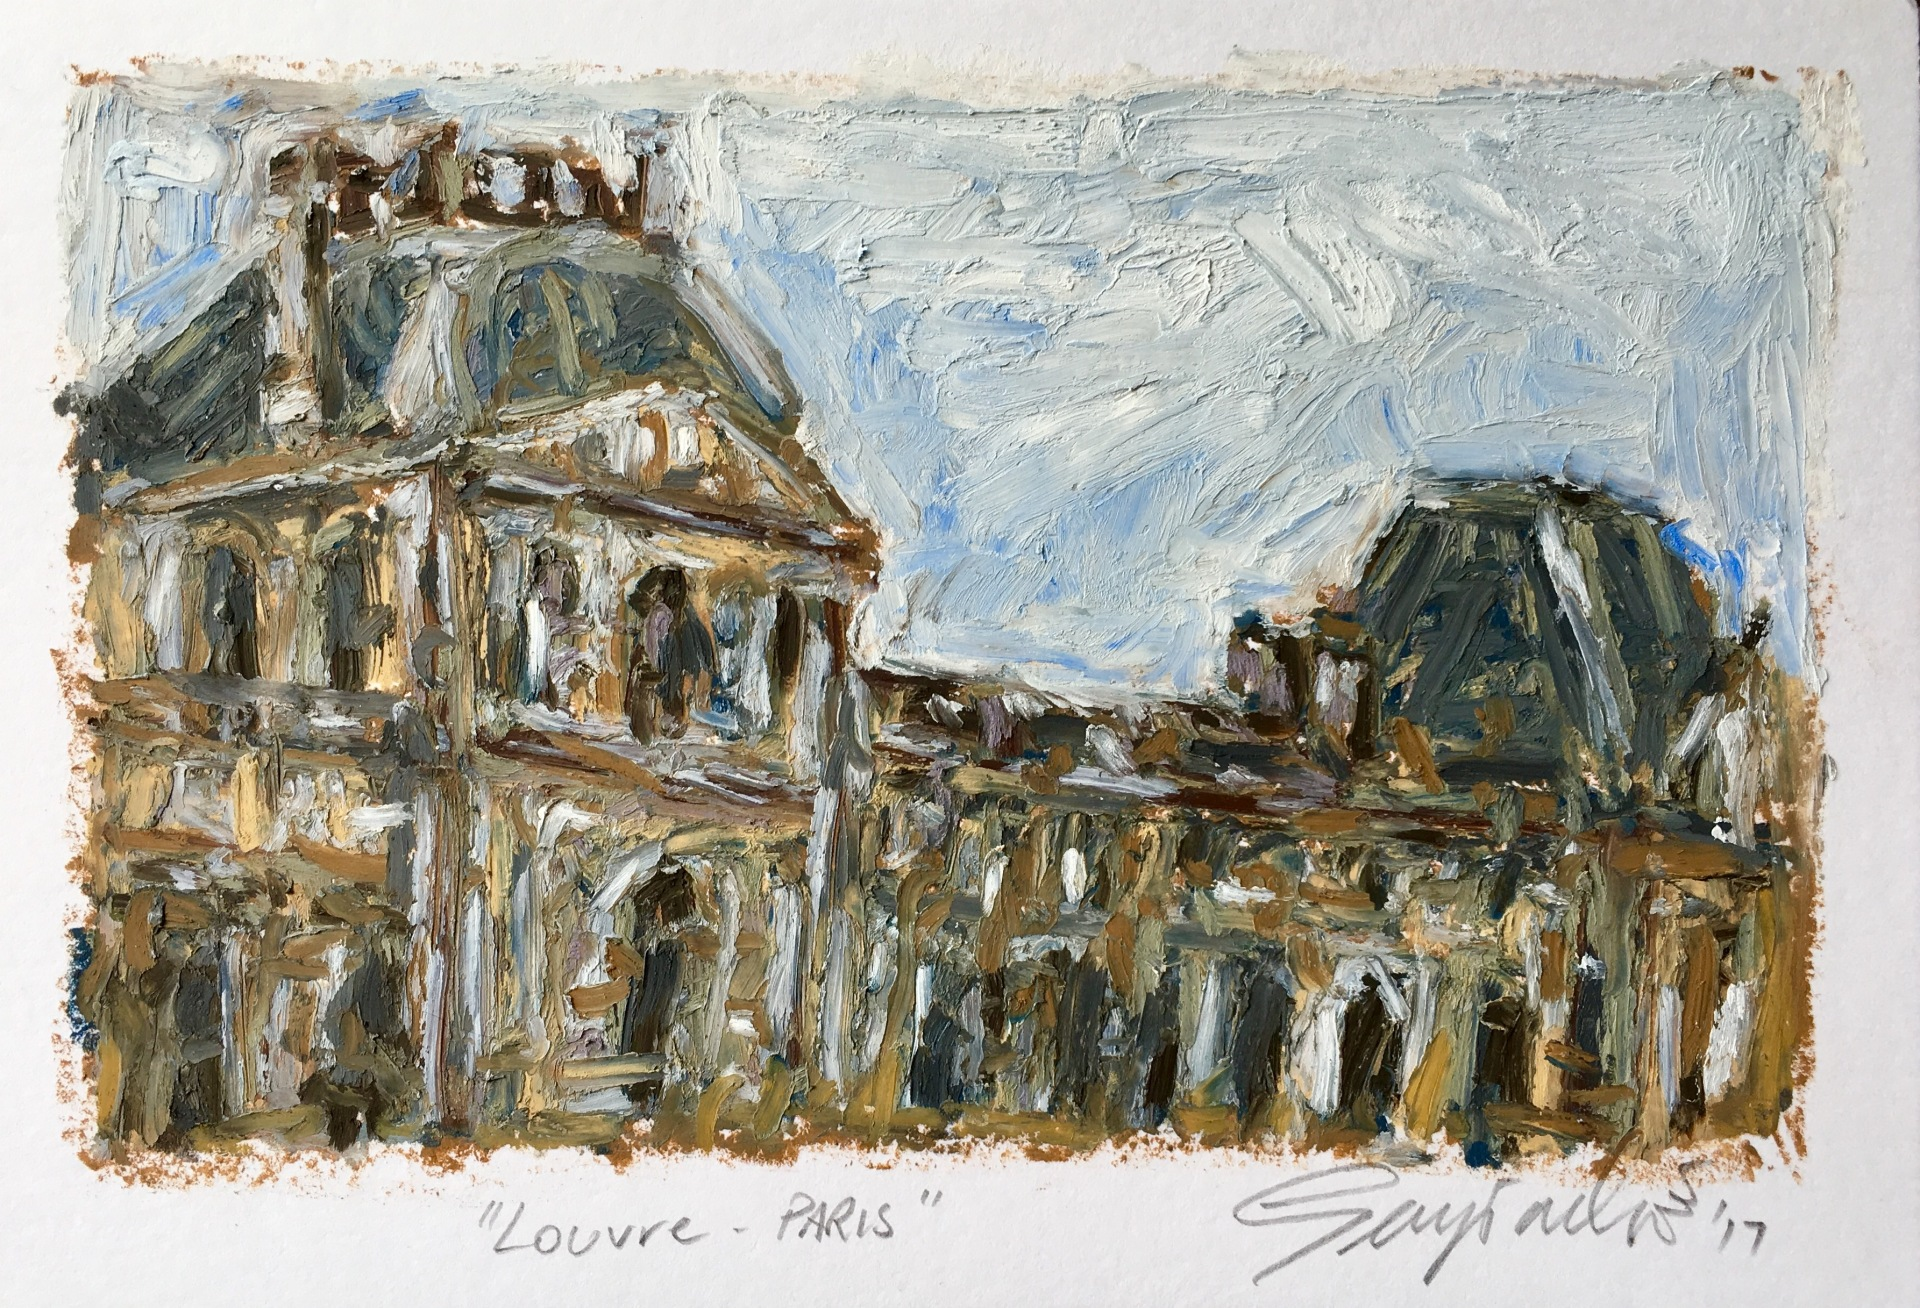 Louvre Paris (SOLD)